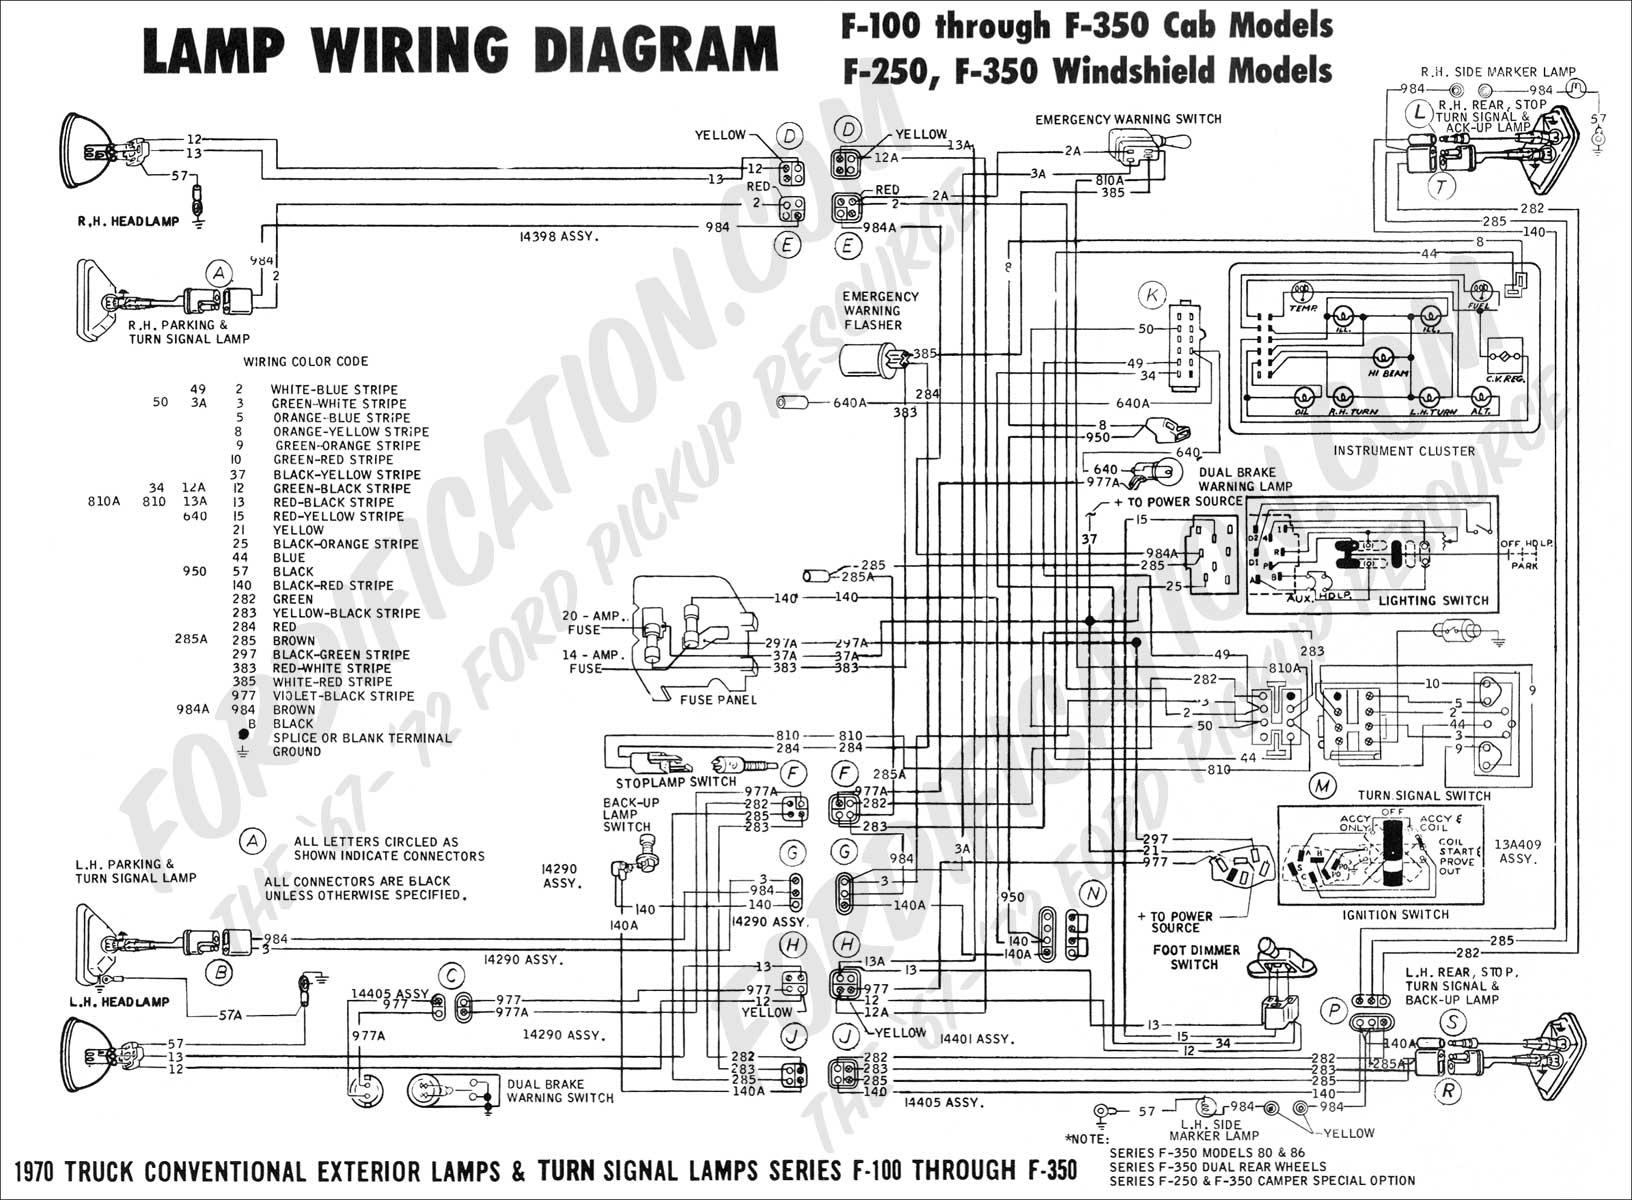 wiring diagram_70ext lights01?resized665%2C489 1994 peterbilt 379 wiring diagram efcaviation com 1999 peterbilt 379 wiring diagram at n-0.co